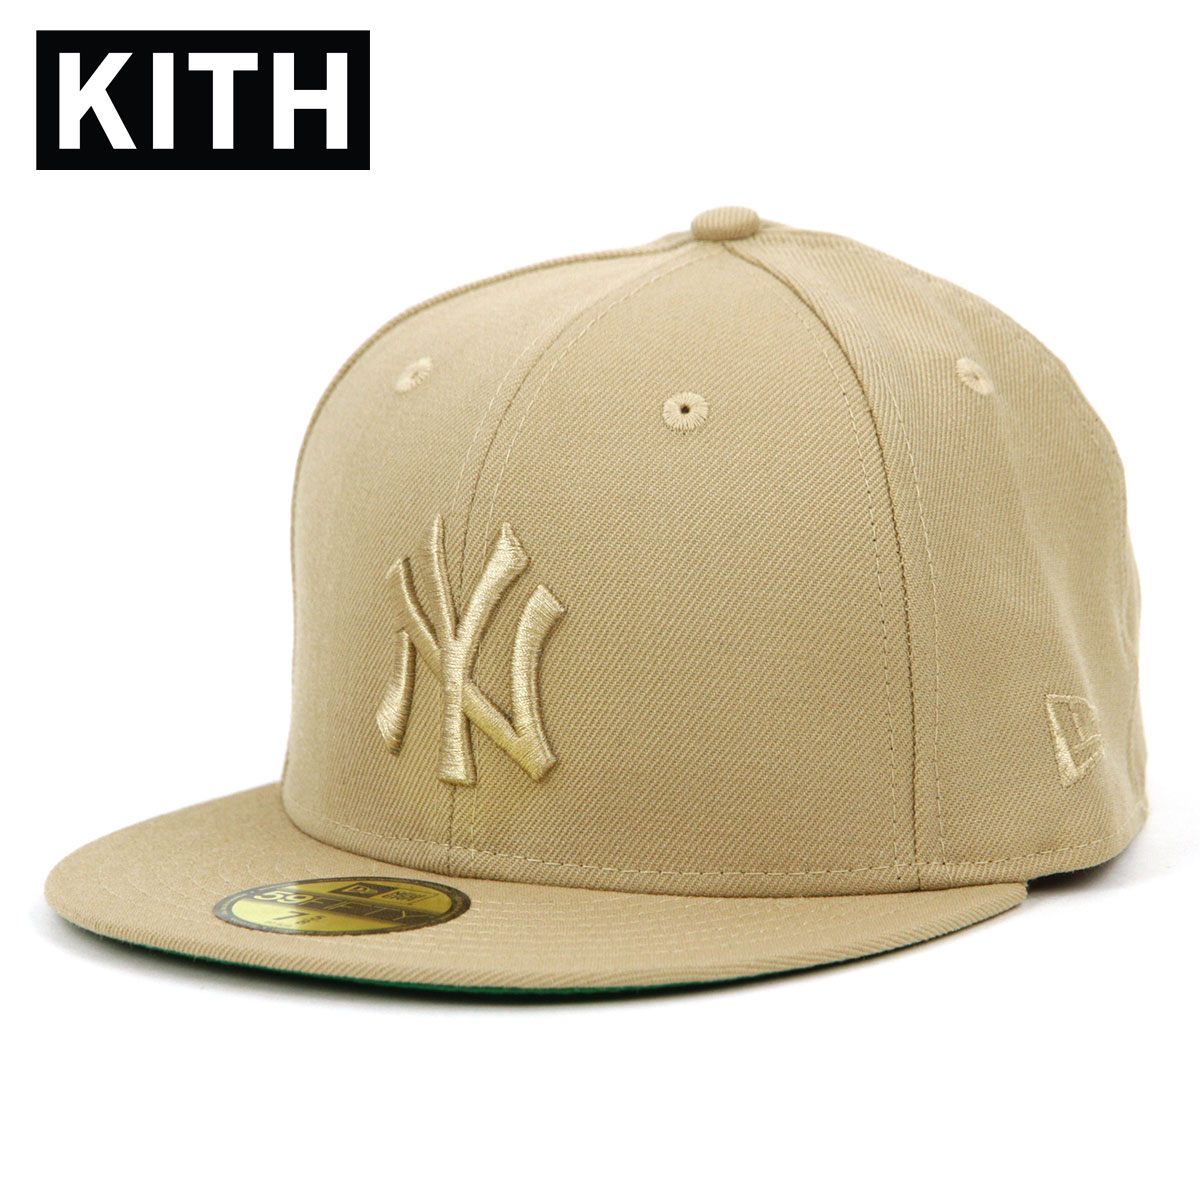 【あす楽対応】 送料無料 A95B B1C C3D D4E E18F キス キャップ メンズ 正規品 KITH 帽子 KITH X NEW ERA X NEW YORK YANKEES 59FIFTY CAPS BEIGE